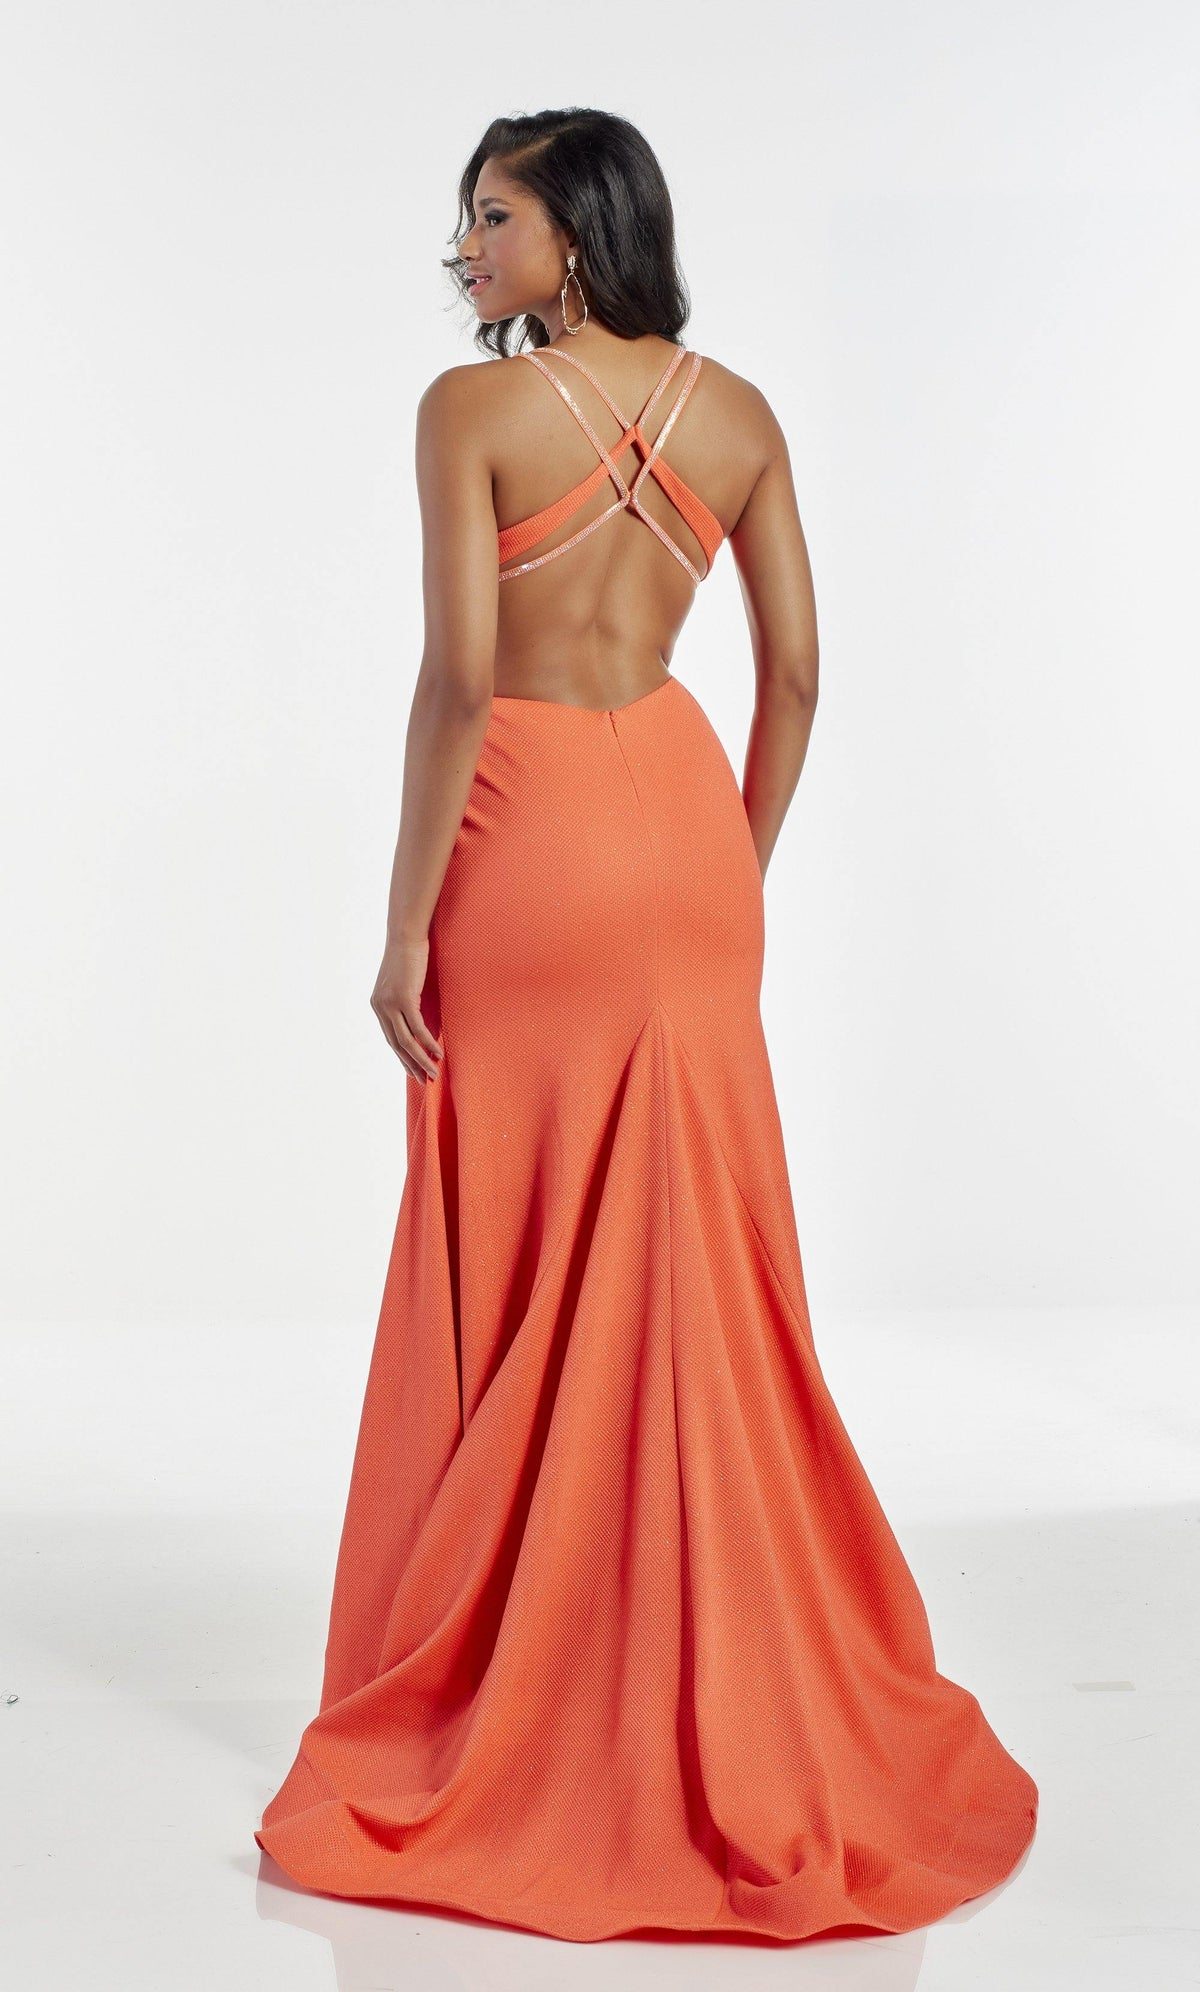 Orange formal dress with a strappy open back and train